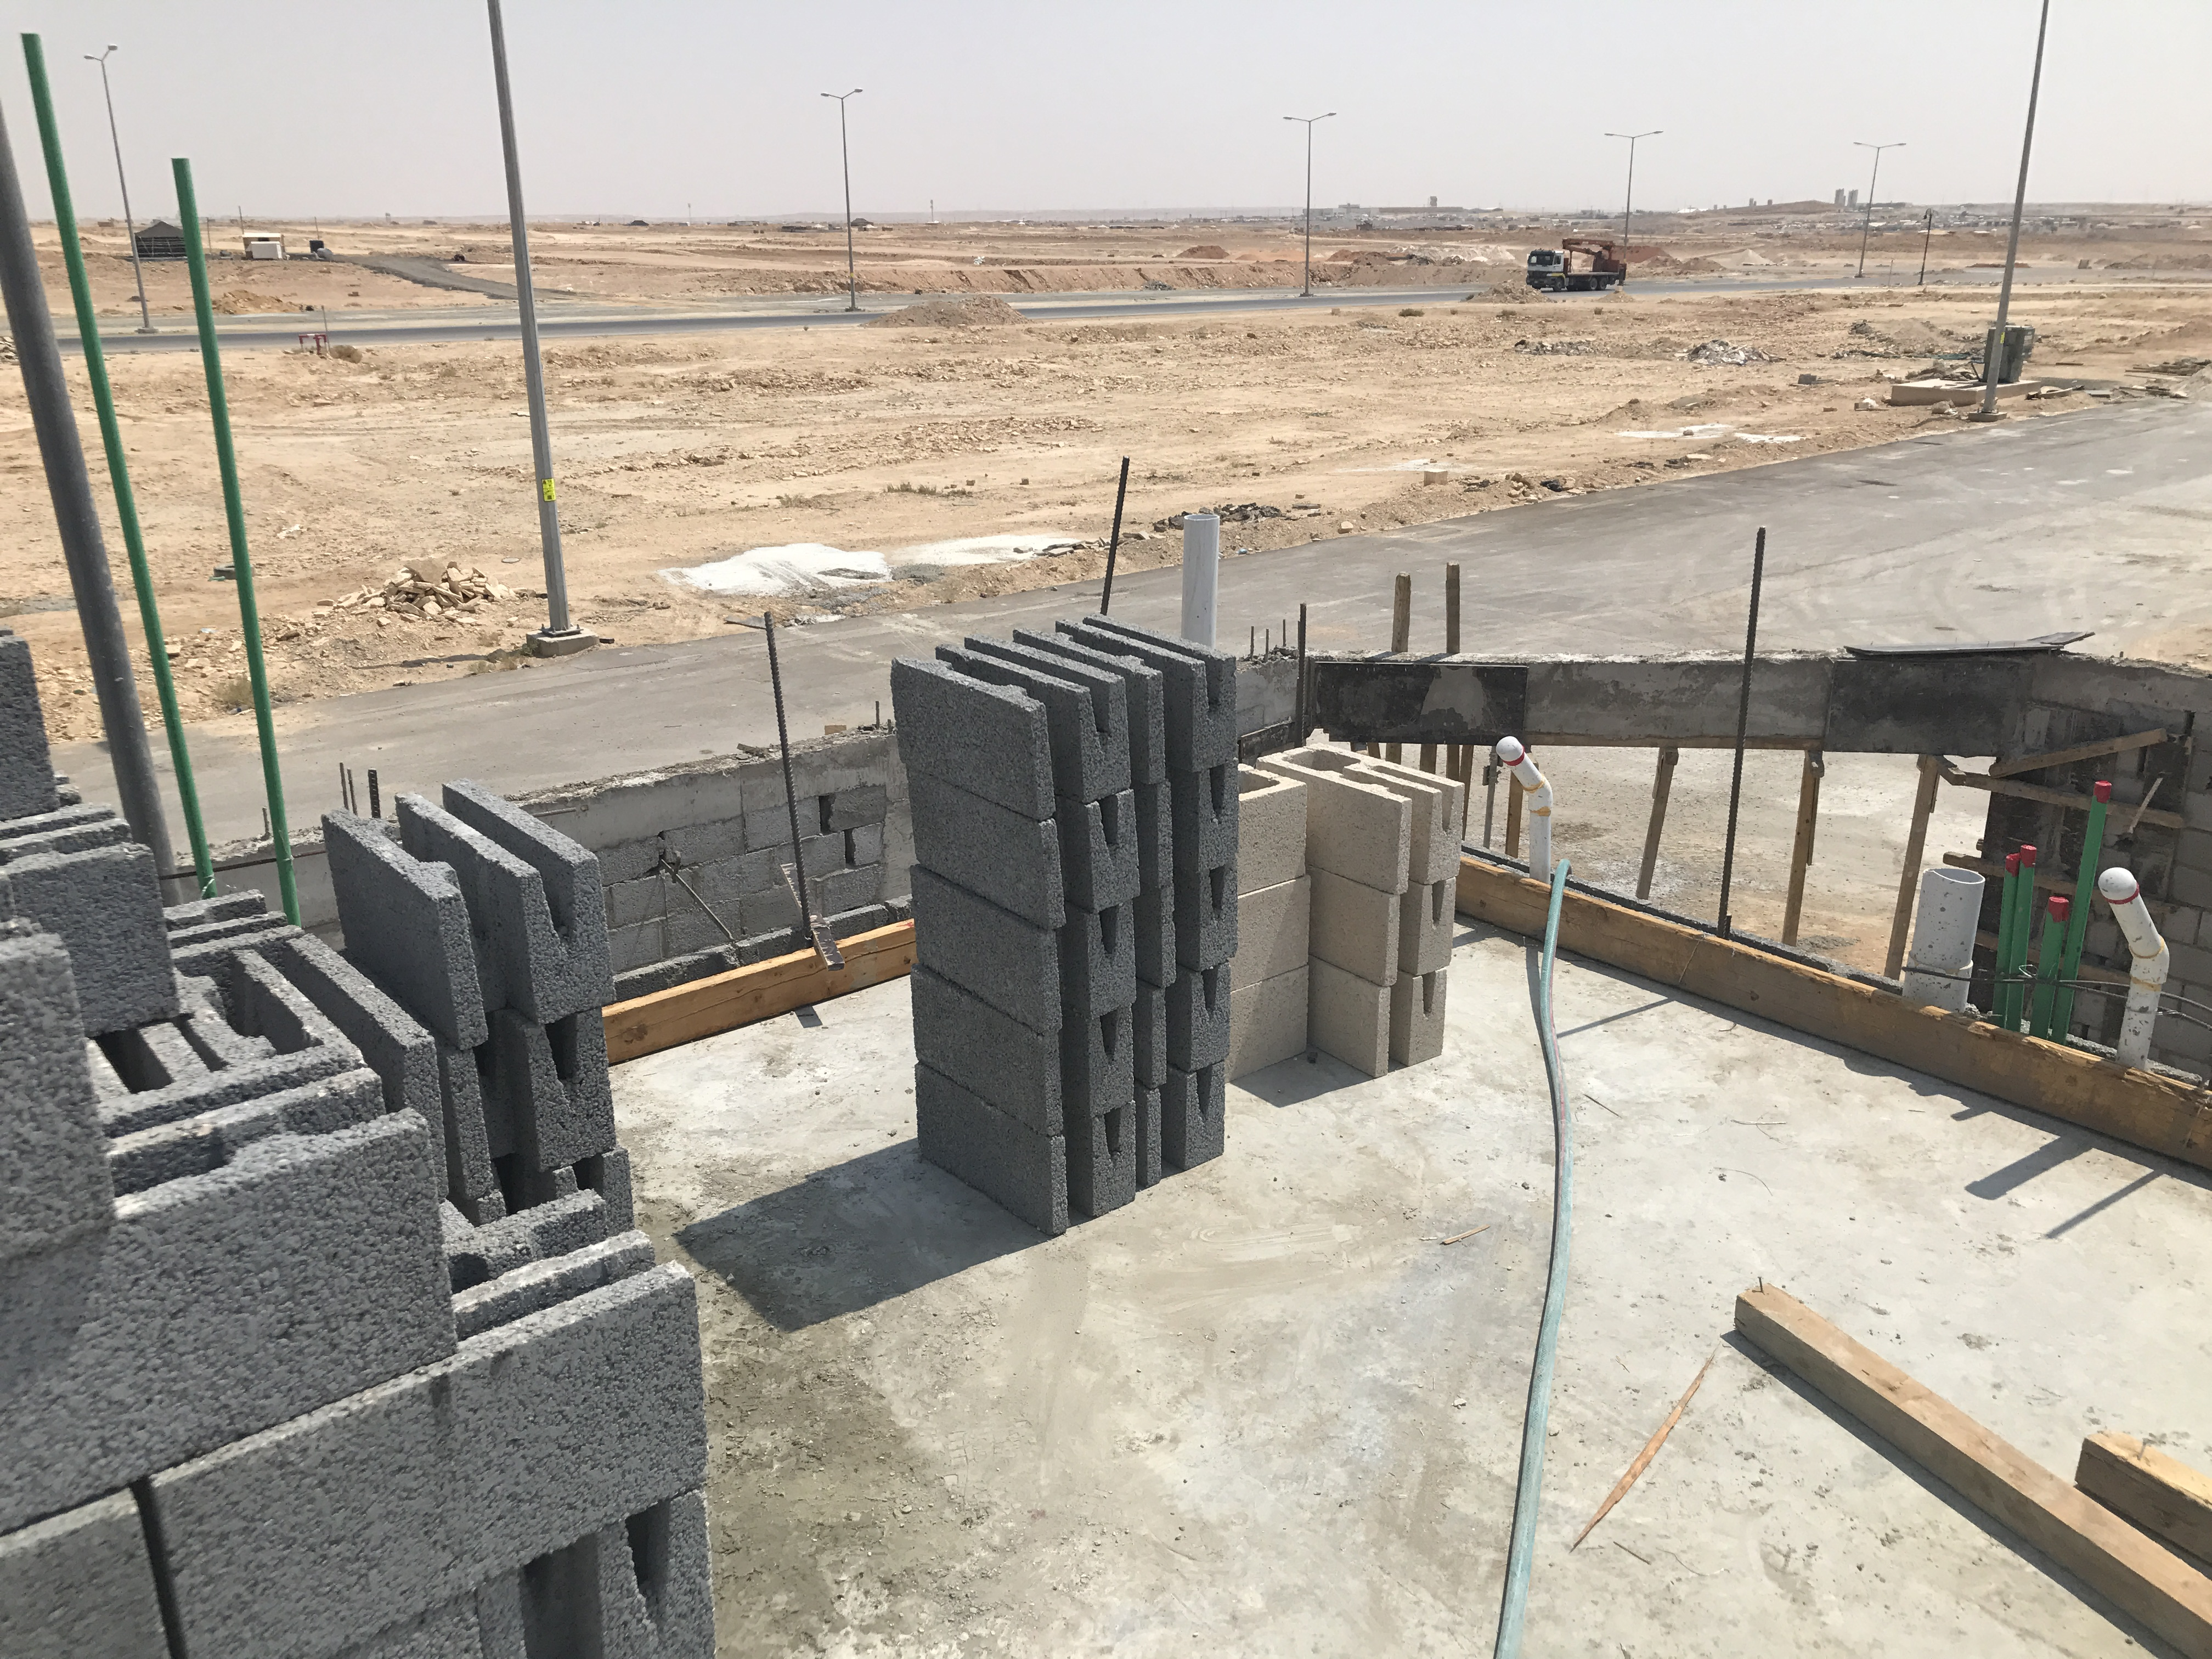 Beautiful The Corner Blocks Are Also Stocked So That The Mason Is Not Delayed In Any  Way. Production Is Key When It Comes To Laying Block So Proper Quantities,  ...